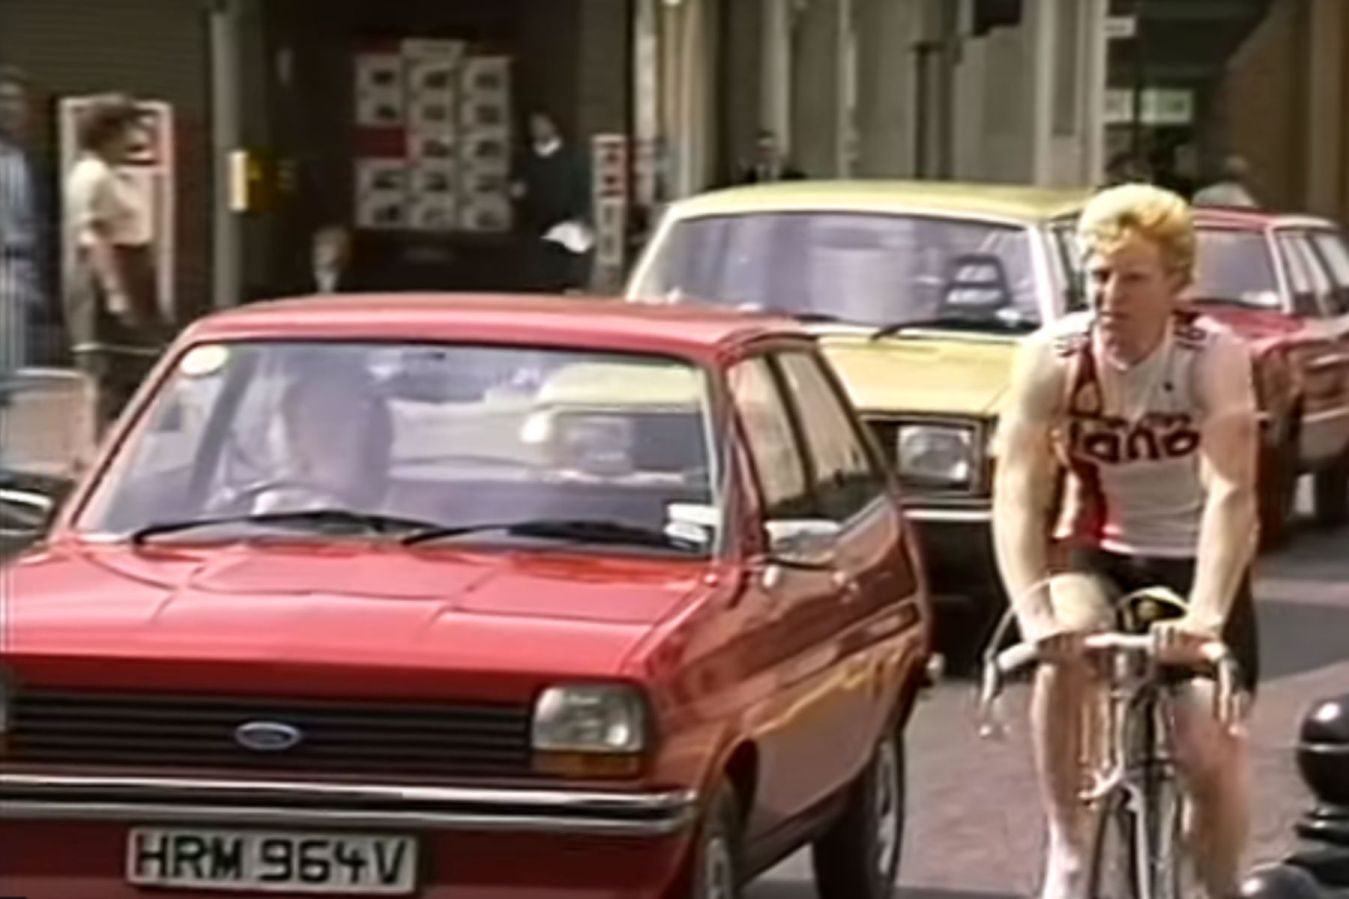 Acceptable in the 80s: 10 old videos to take you back in time